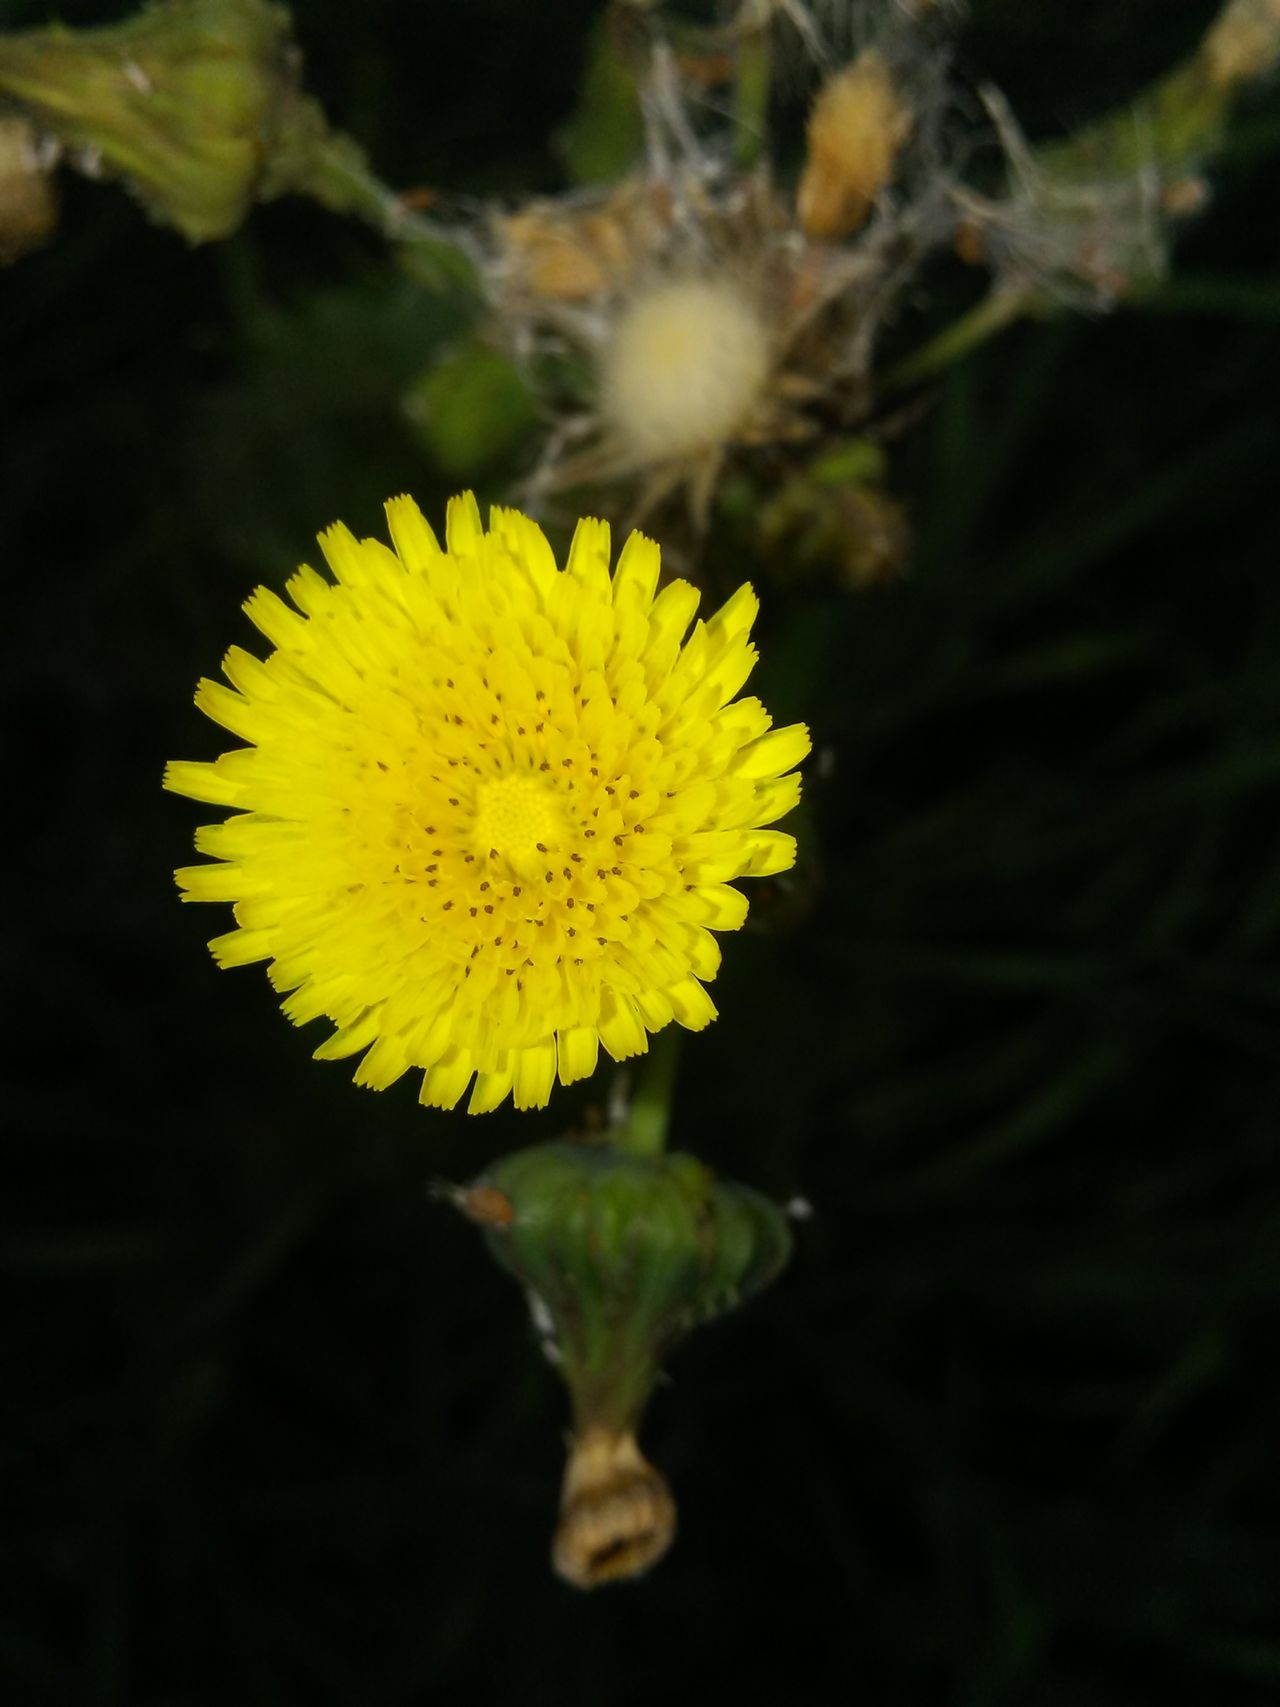 Yellow Flower Flower Head Fragility Nature Beauty In Nature Petal Freshness Sunflower Outdoors Plant Blossom Daisy Pollen Springtime Close-up No People Agriculture Day